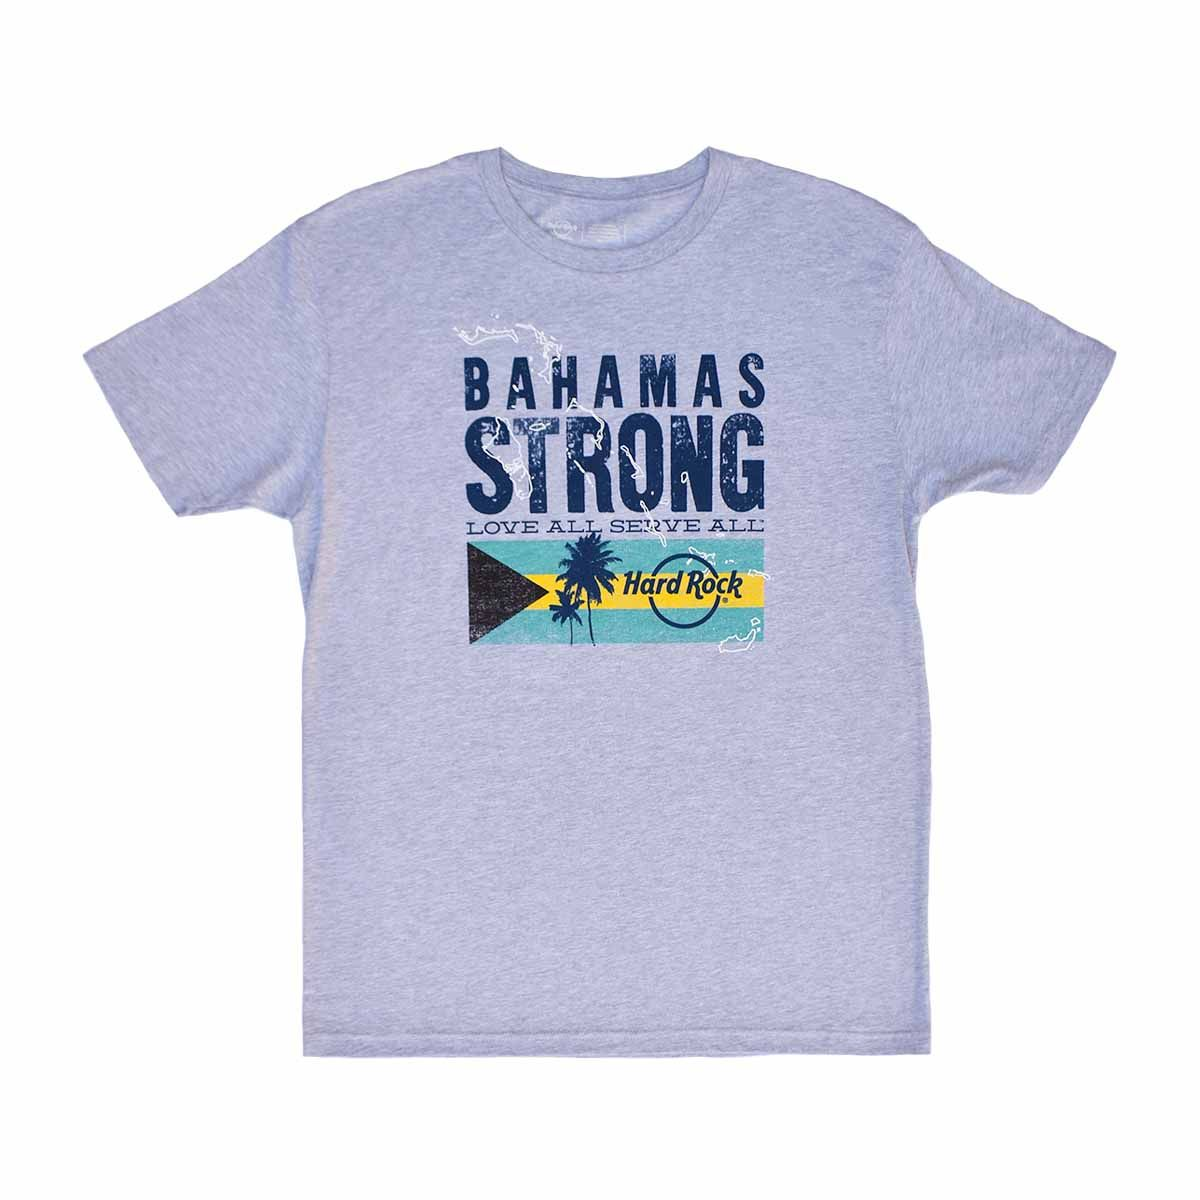 Unisex Hard Rock Bahamas Strong Tee